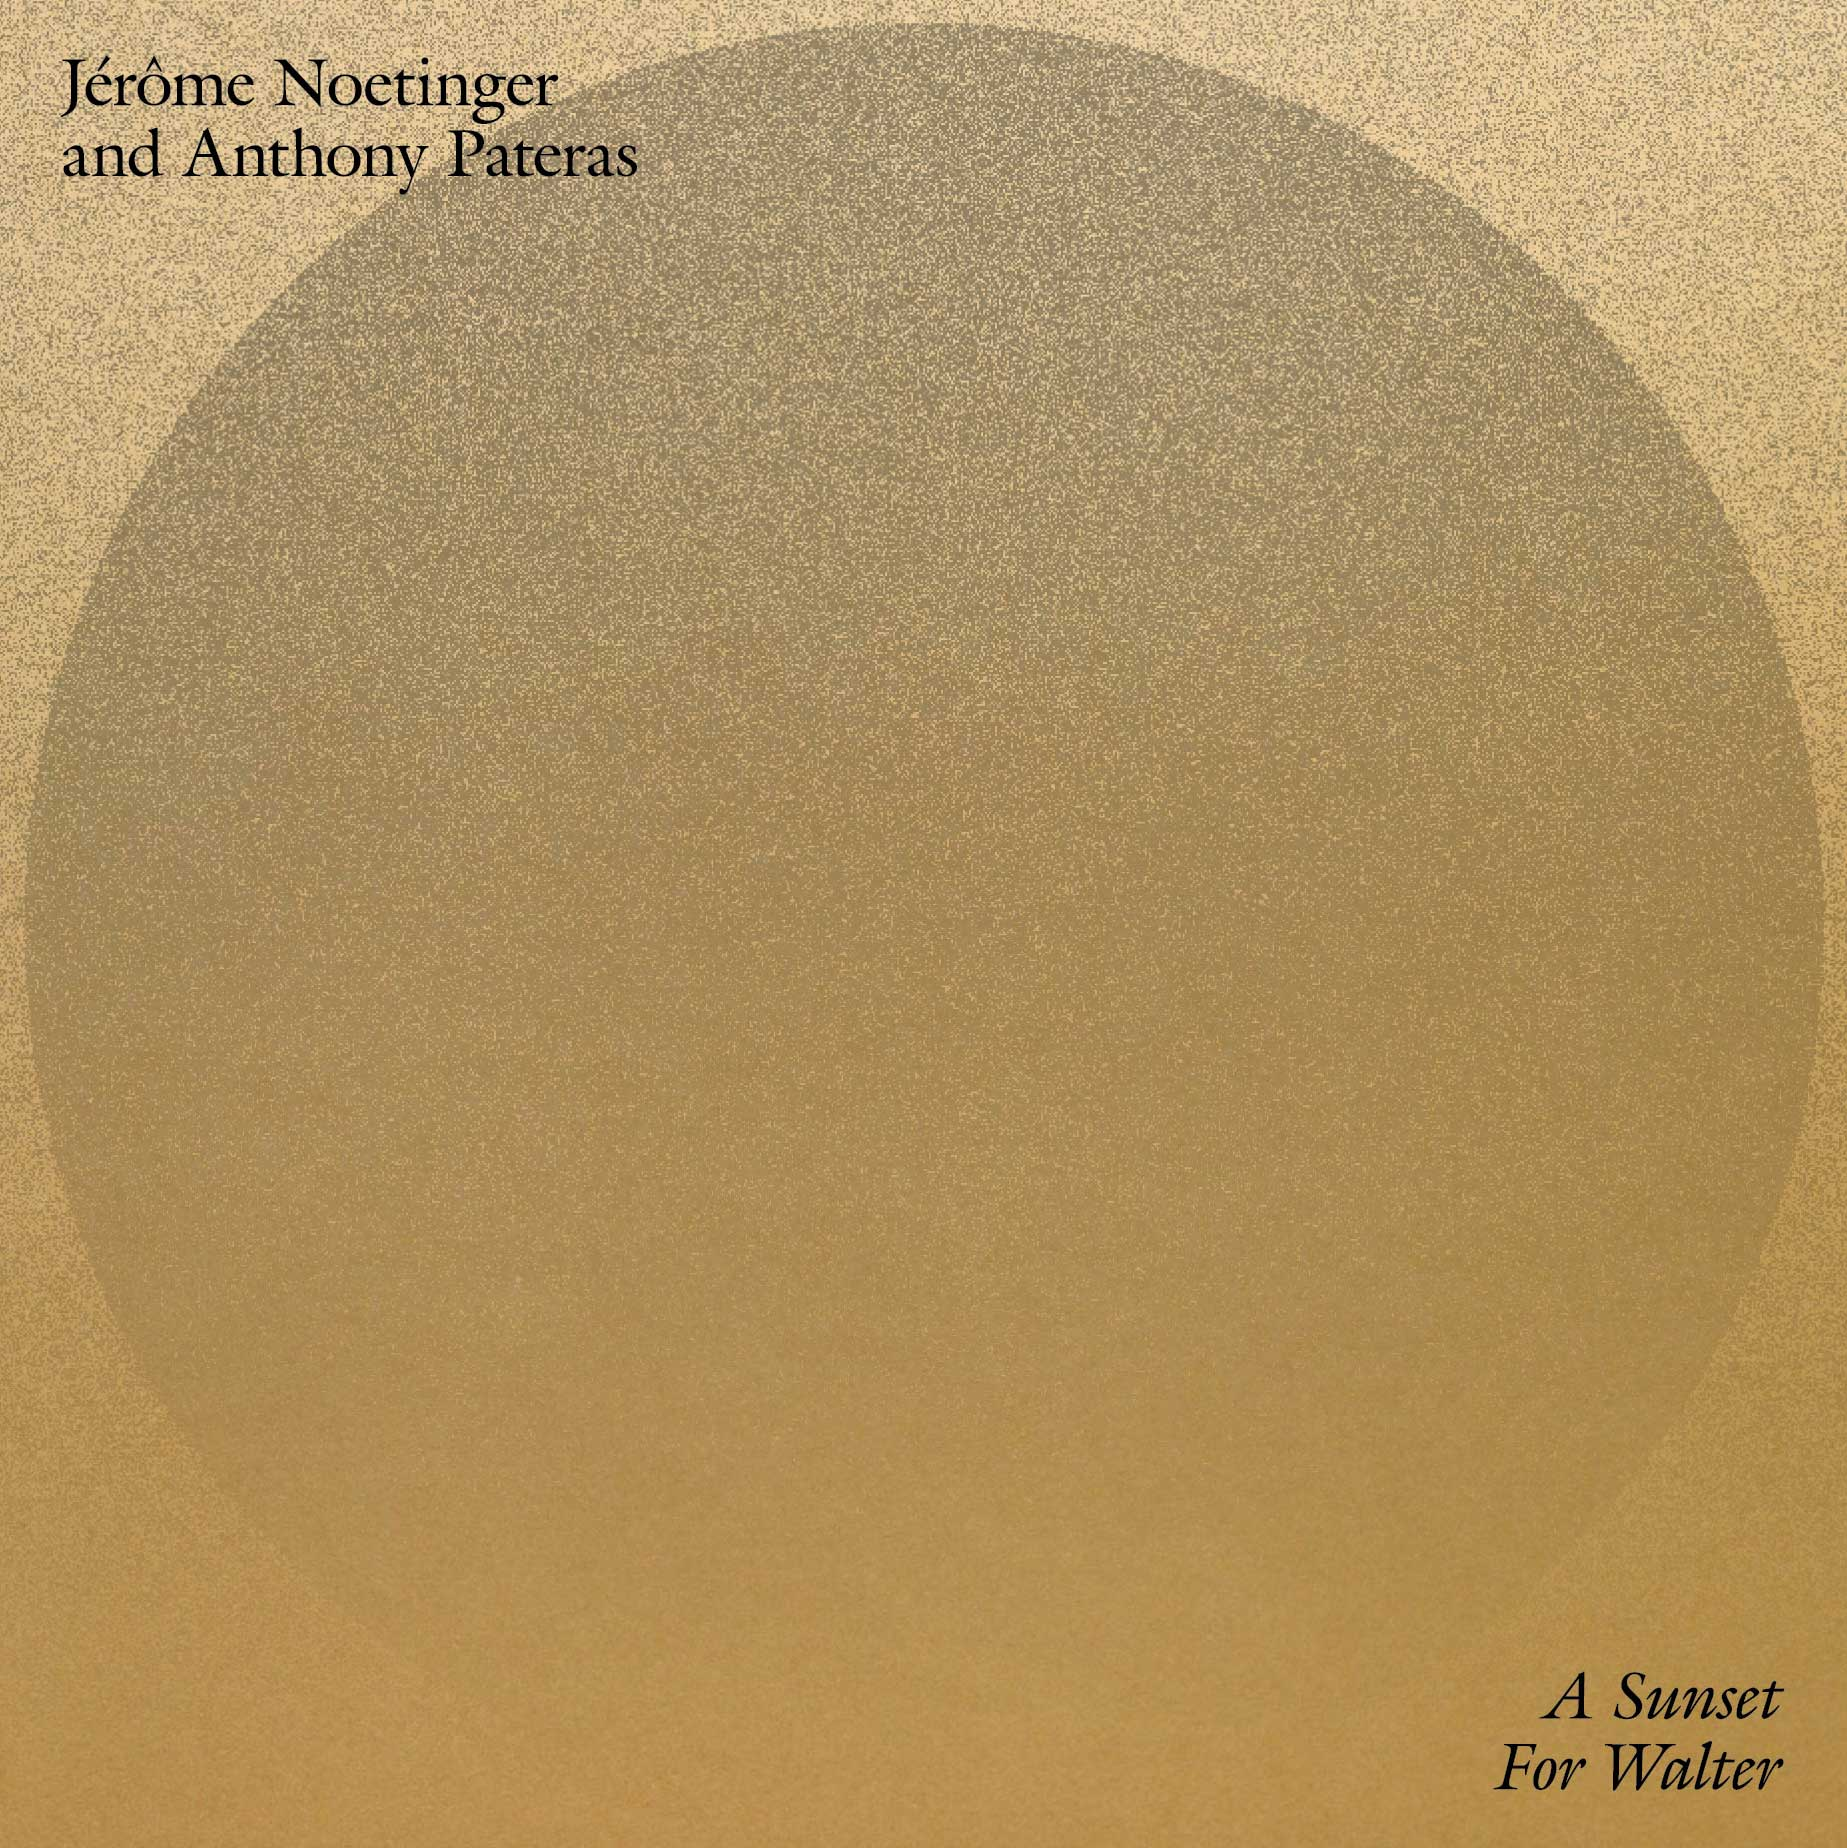 Jérôme Noetinger and Anthony Pateras - A Sunset For Walter LP